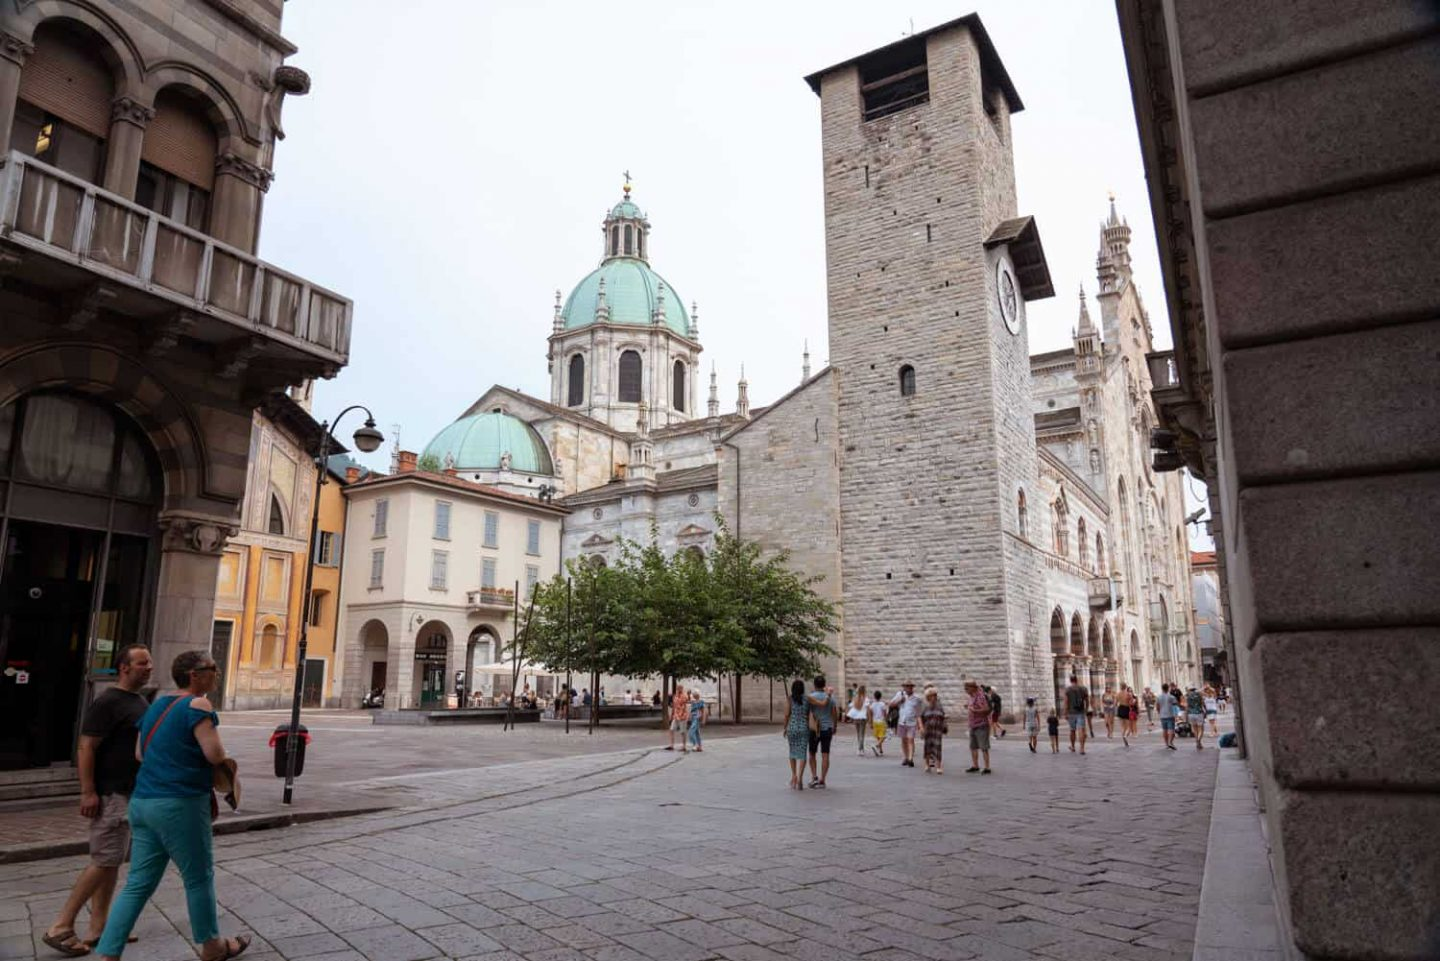 Church of San Giacomo, the Bell Tower, Como Cathedral and Broletto create a powerful scene together.